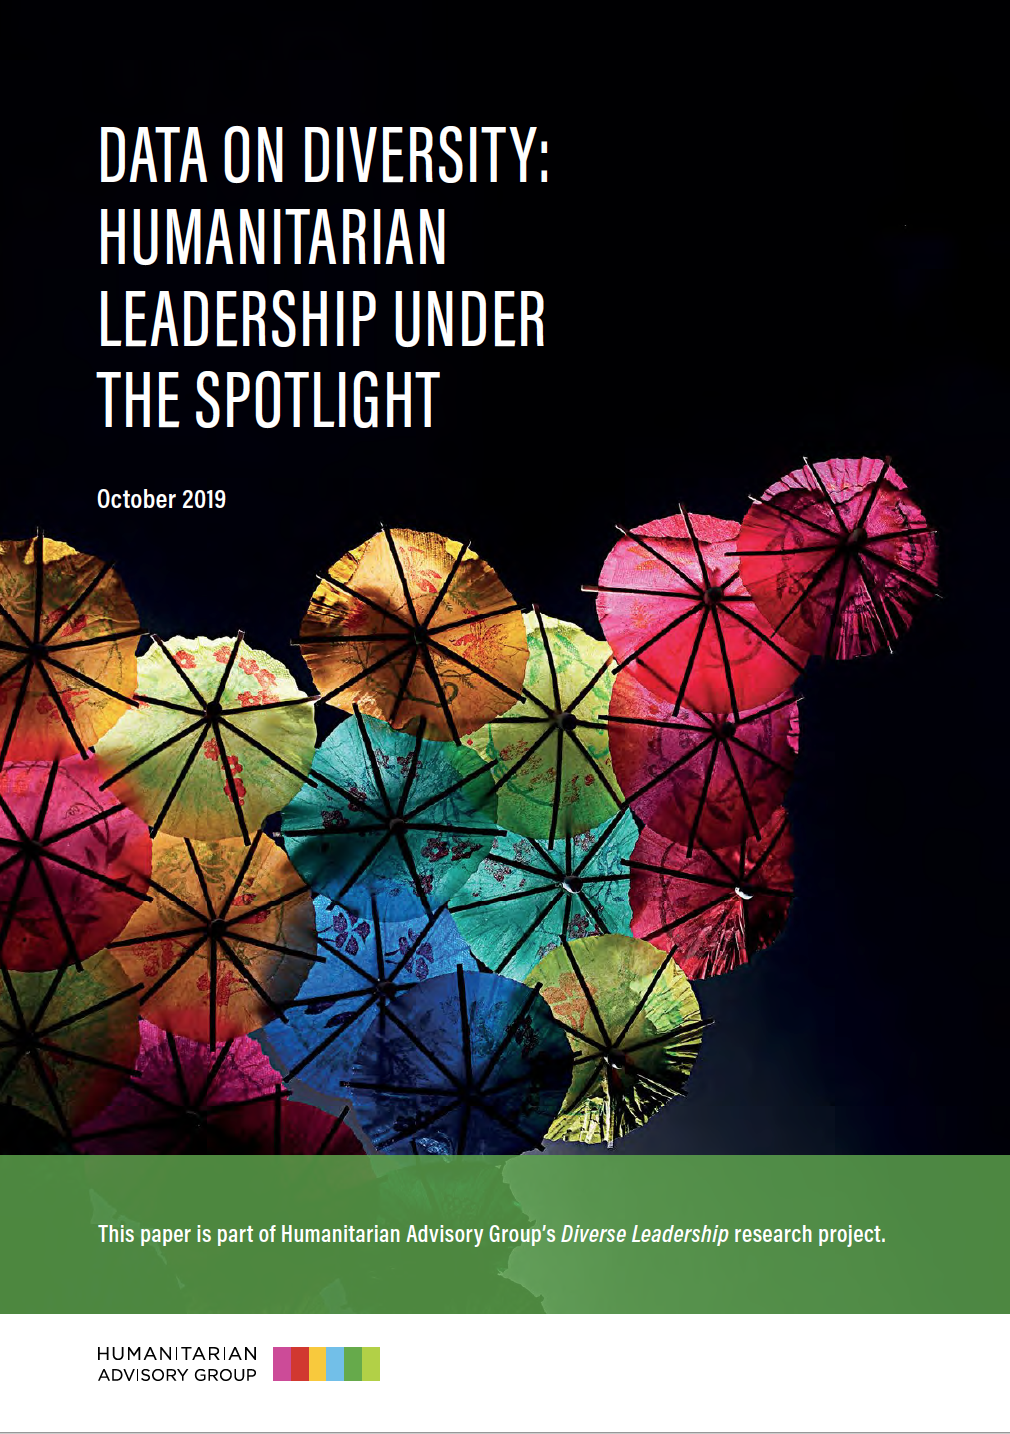 Data on Diversity: Humanitarian leadership under the spotlight